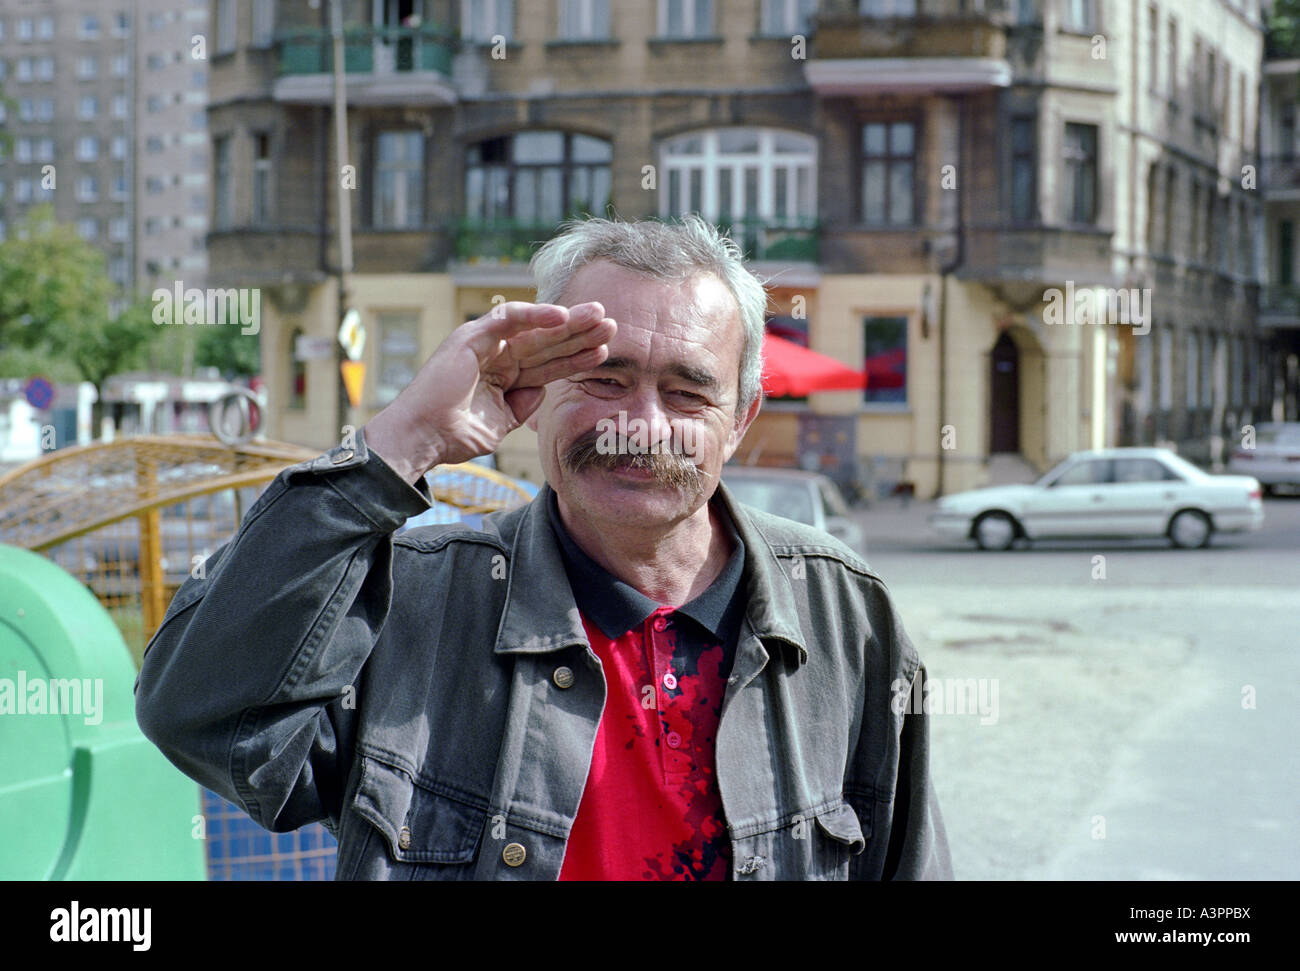 Man making a greeting gesture, Poznan, Poland. - Stock Image